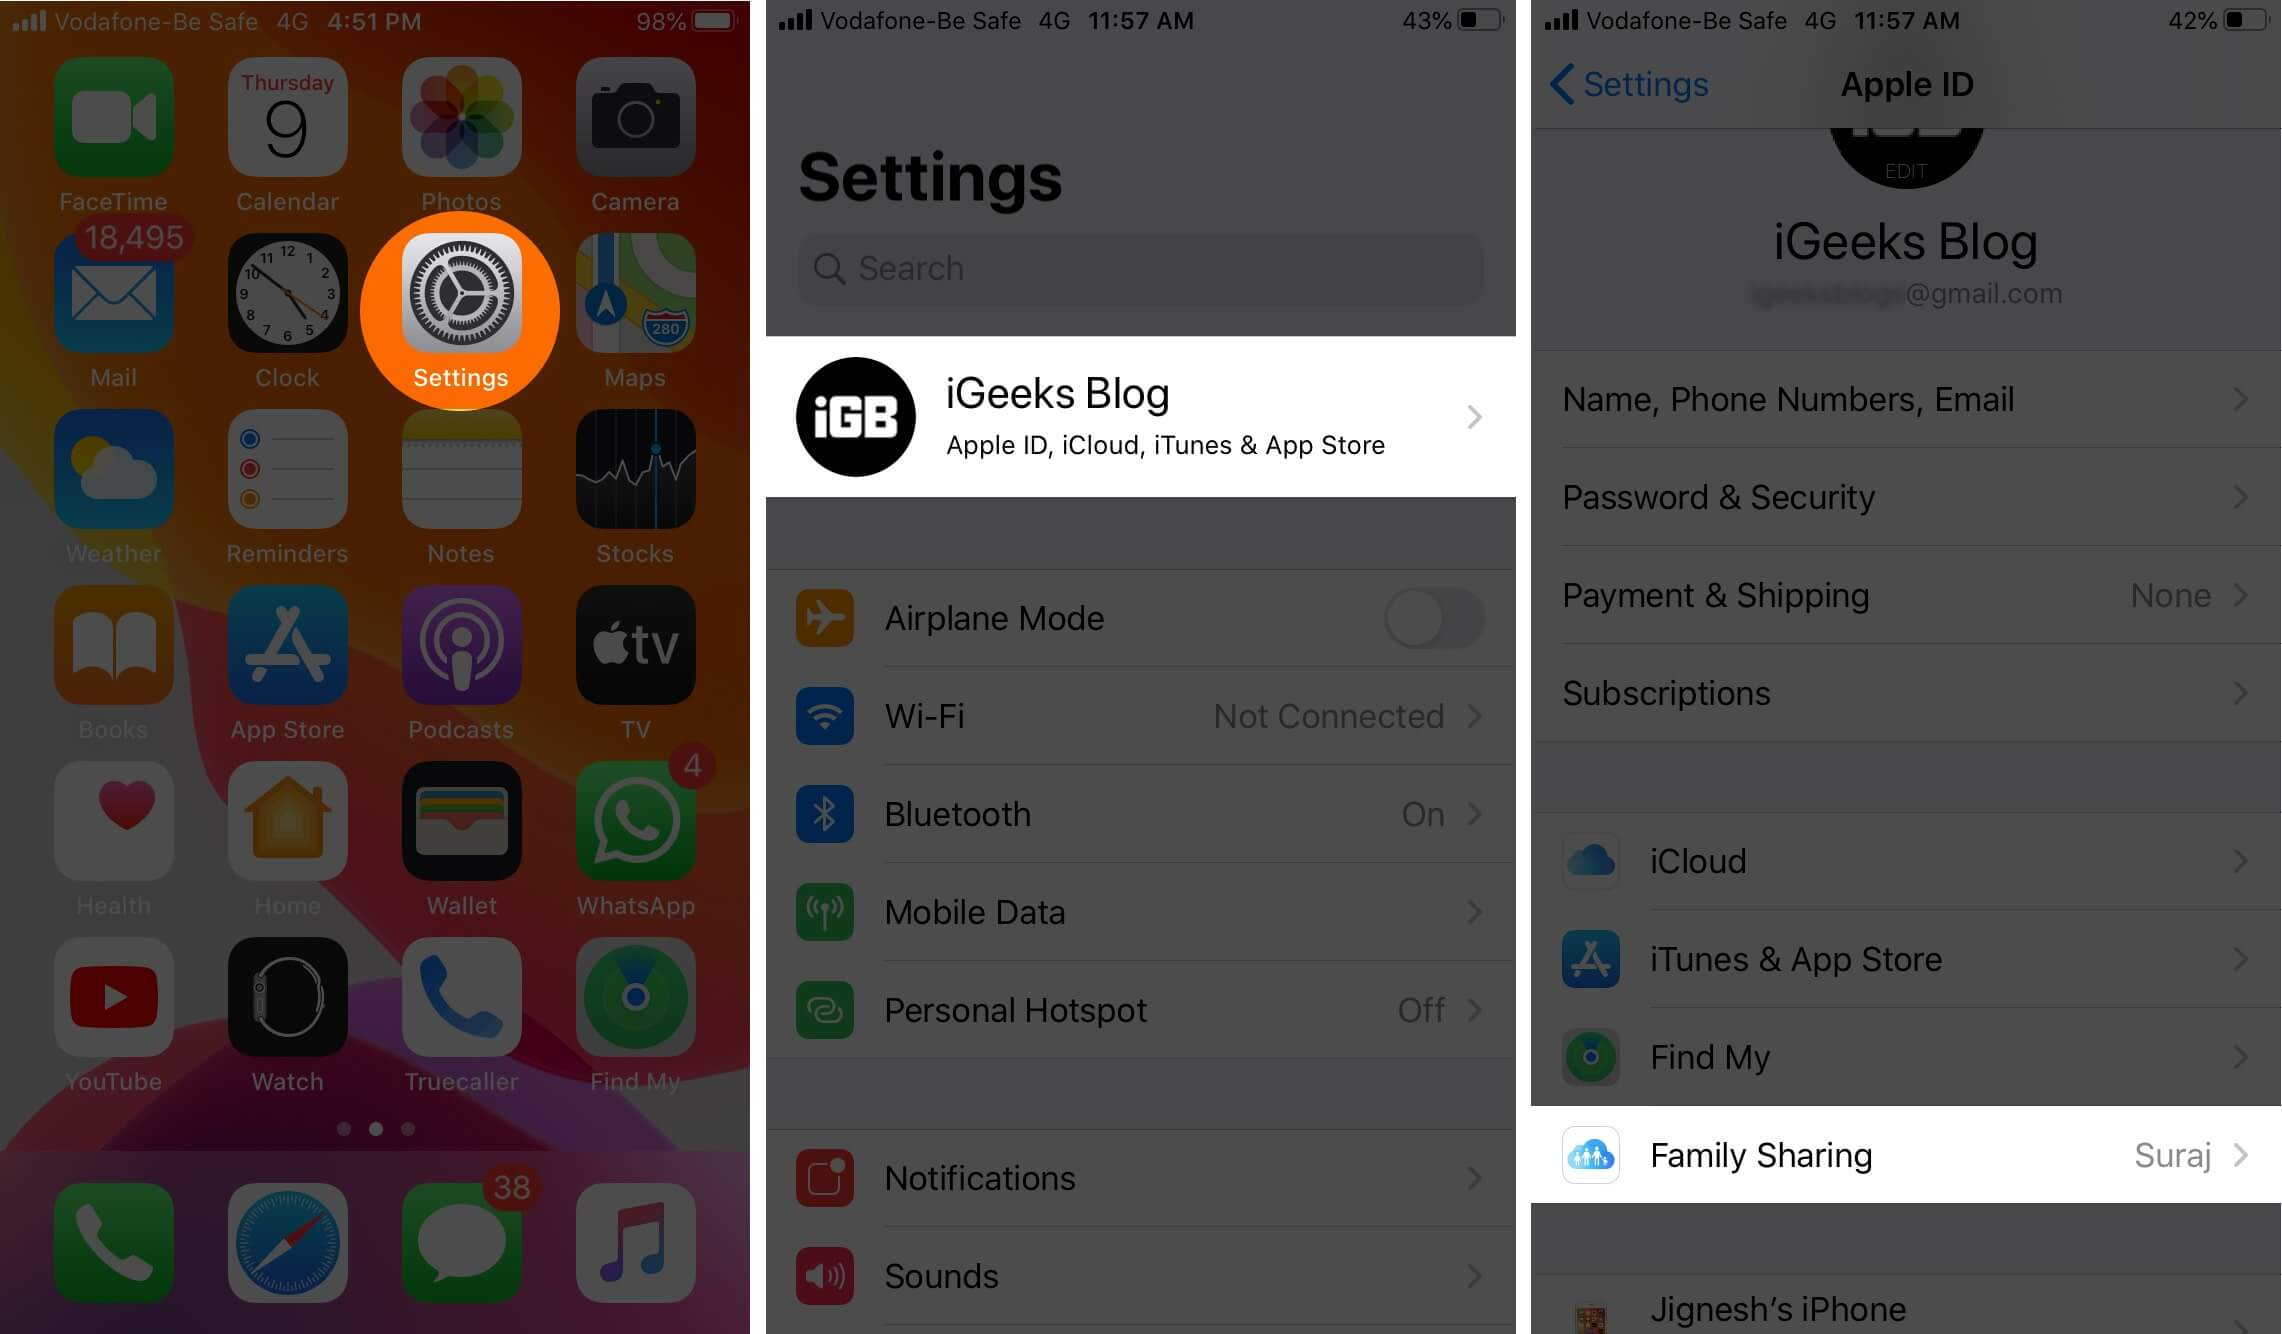 Open Settings Tap on Profile and Then Tap on Family Sharing